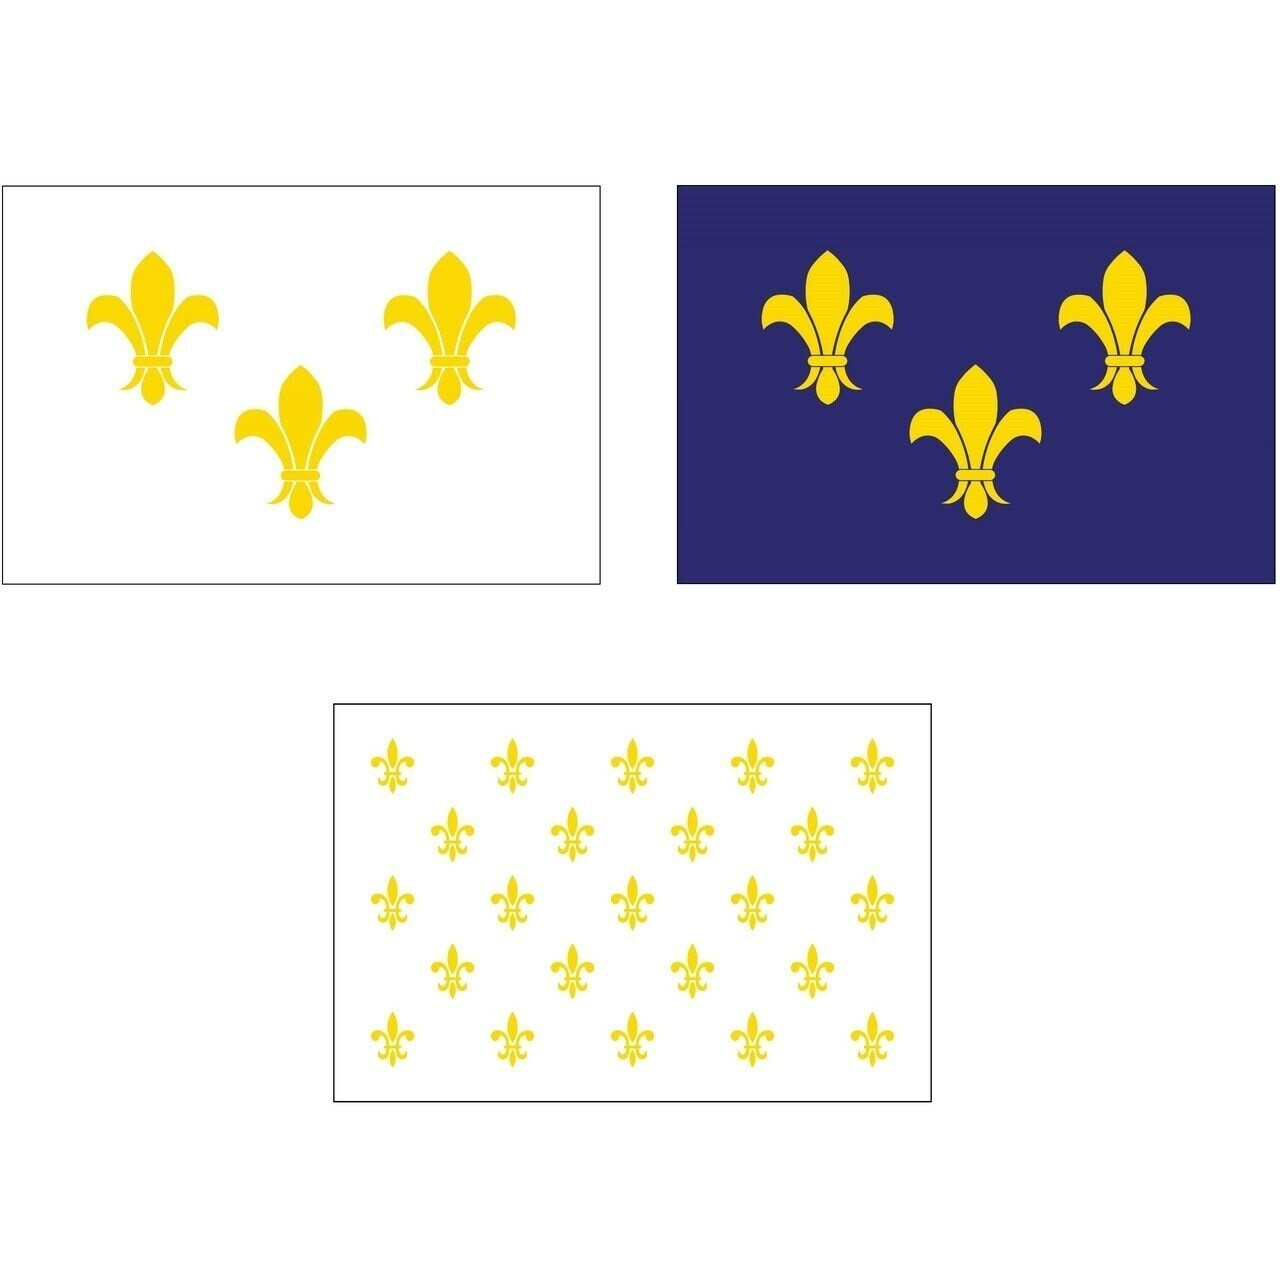 Nylon fleur-de-lis flag, available in three designs. The first design features a blue background with three golden yellow fleur-de-lis lily flowers at center. The second option features a white background with three golden yellow fleur-de-lis lily flowers at center. The third option features a white backdrop with 23 golden yellow fleur-de-lis flowers at center. Along the mounting side of the flag is a canvas header with brass grommets for attaching the flag to a flagpole with snaps or hooks.